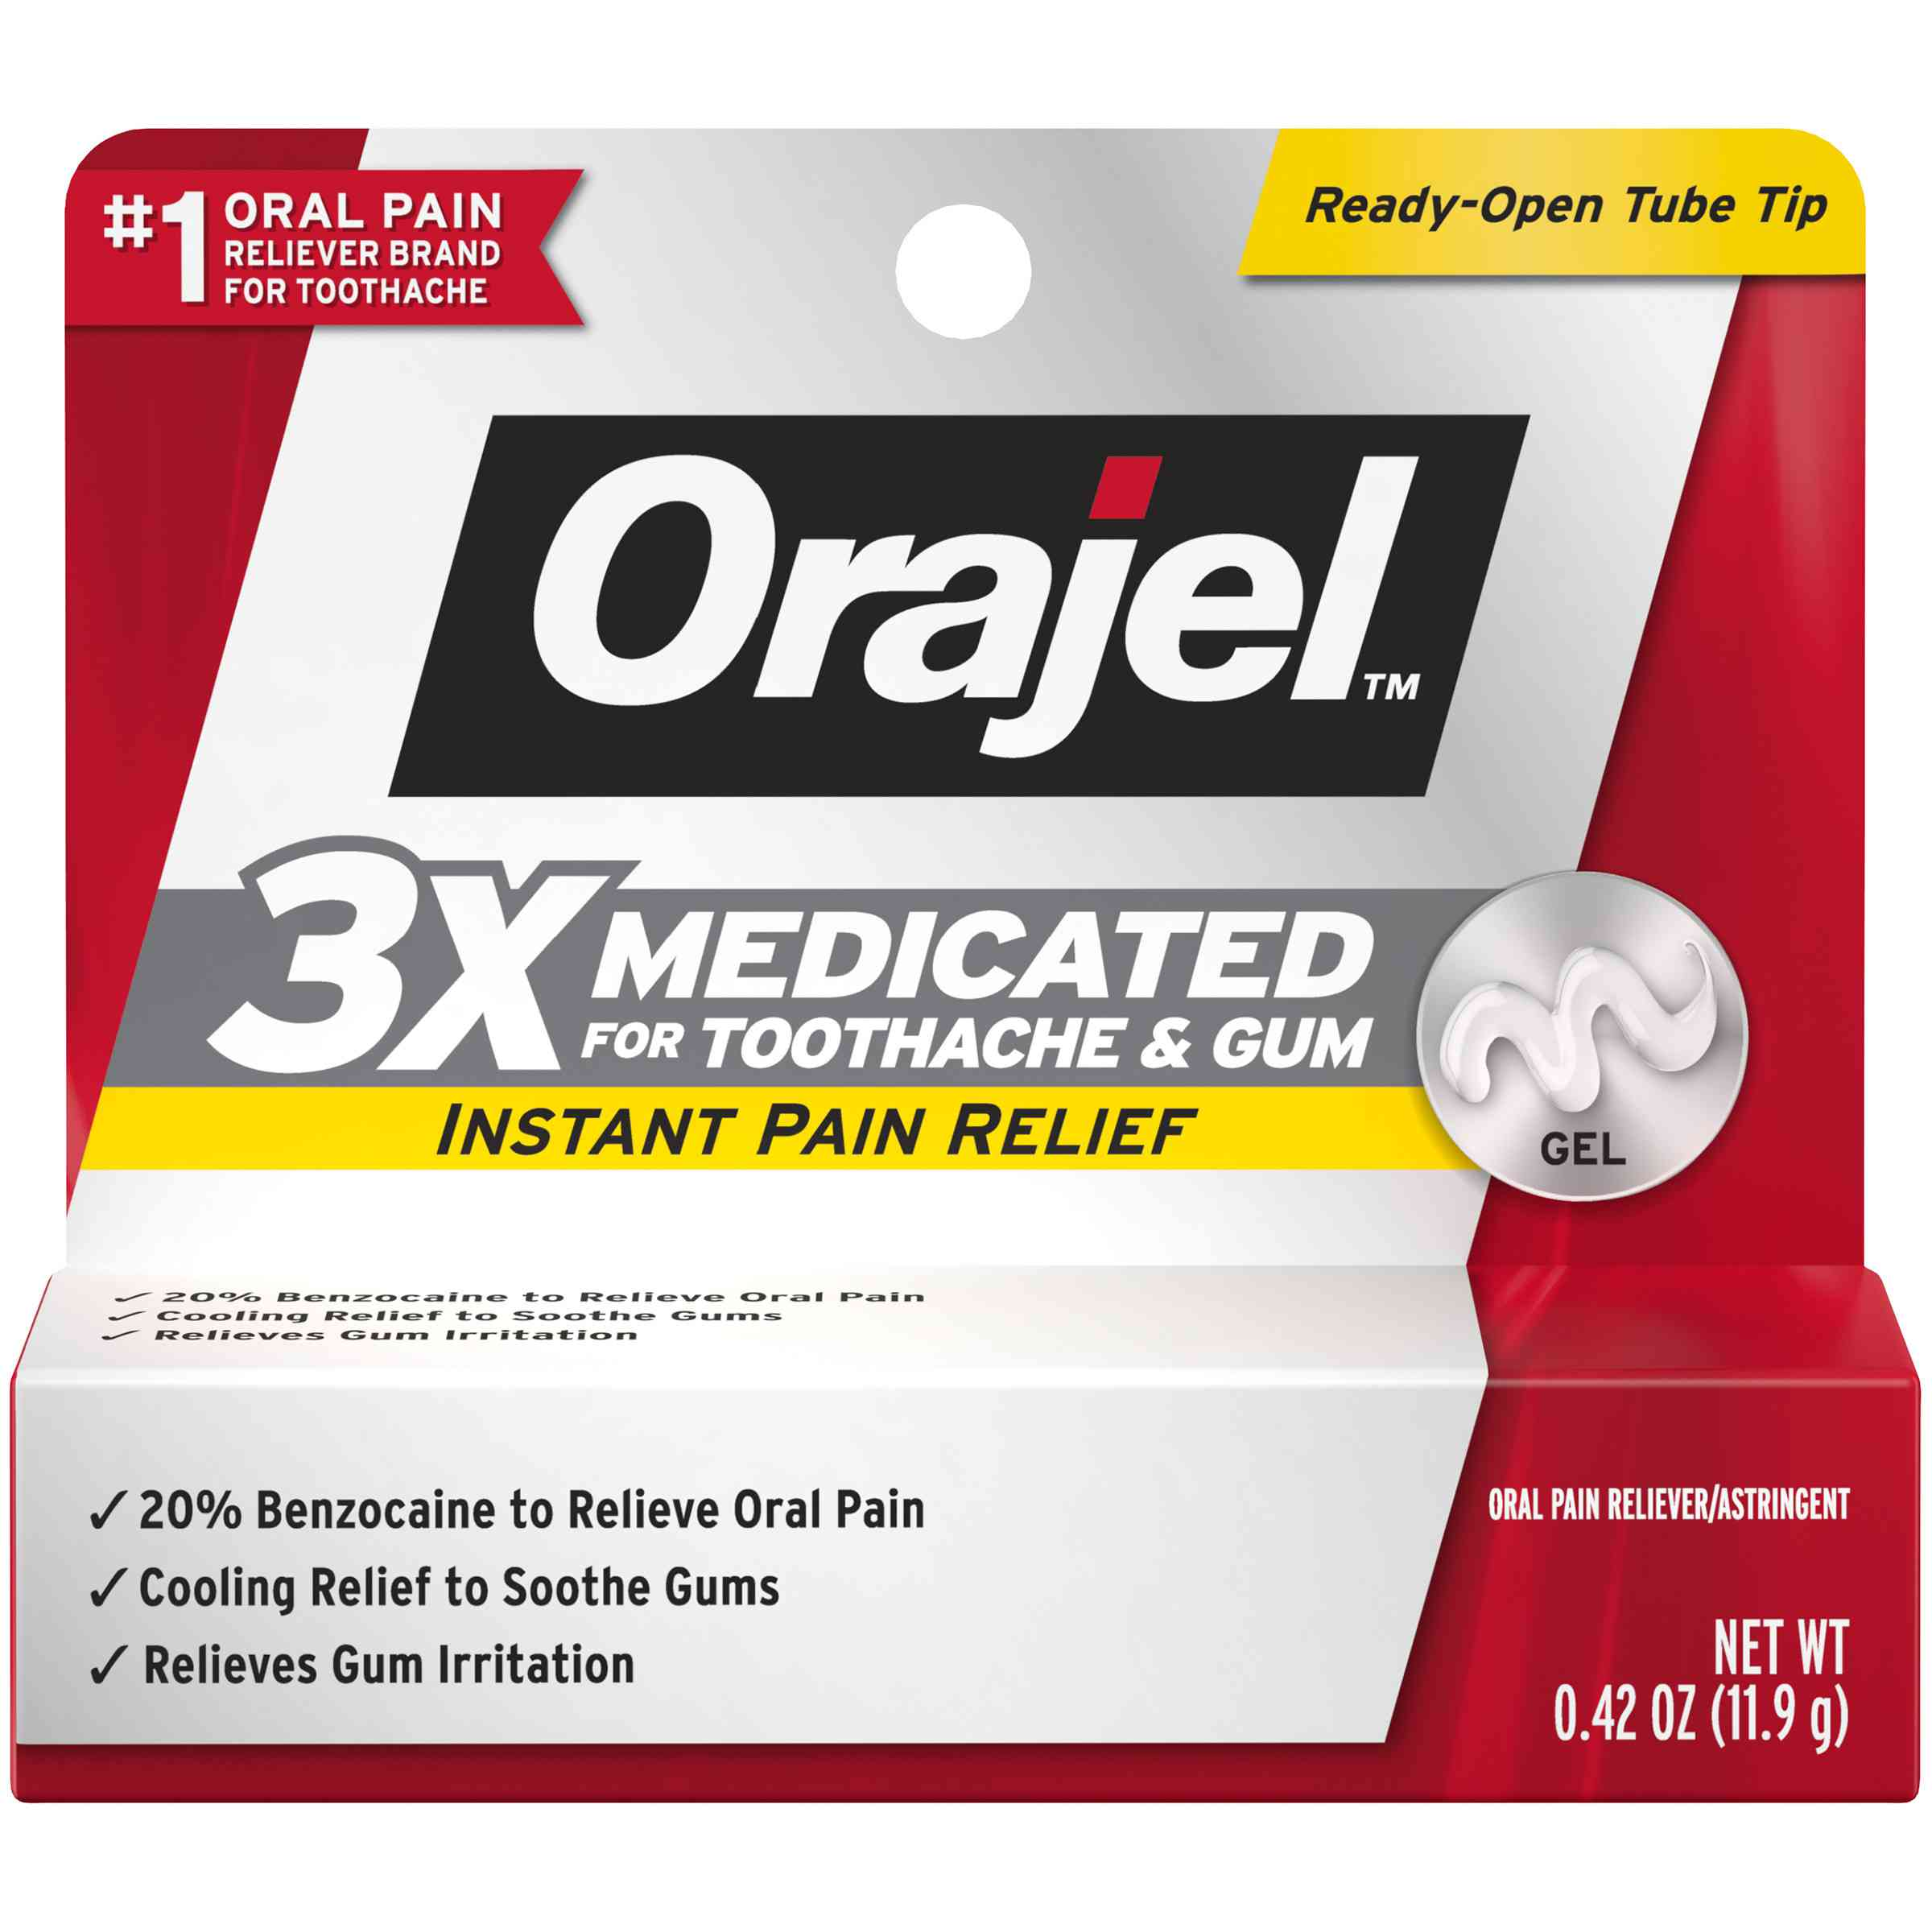 The 8 Best OTC Pain Relievers of 2019